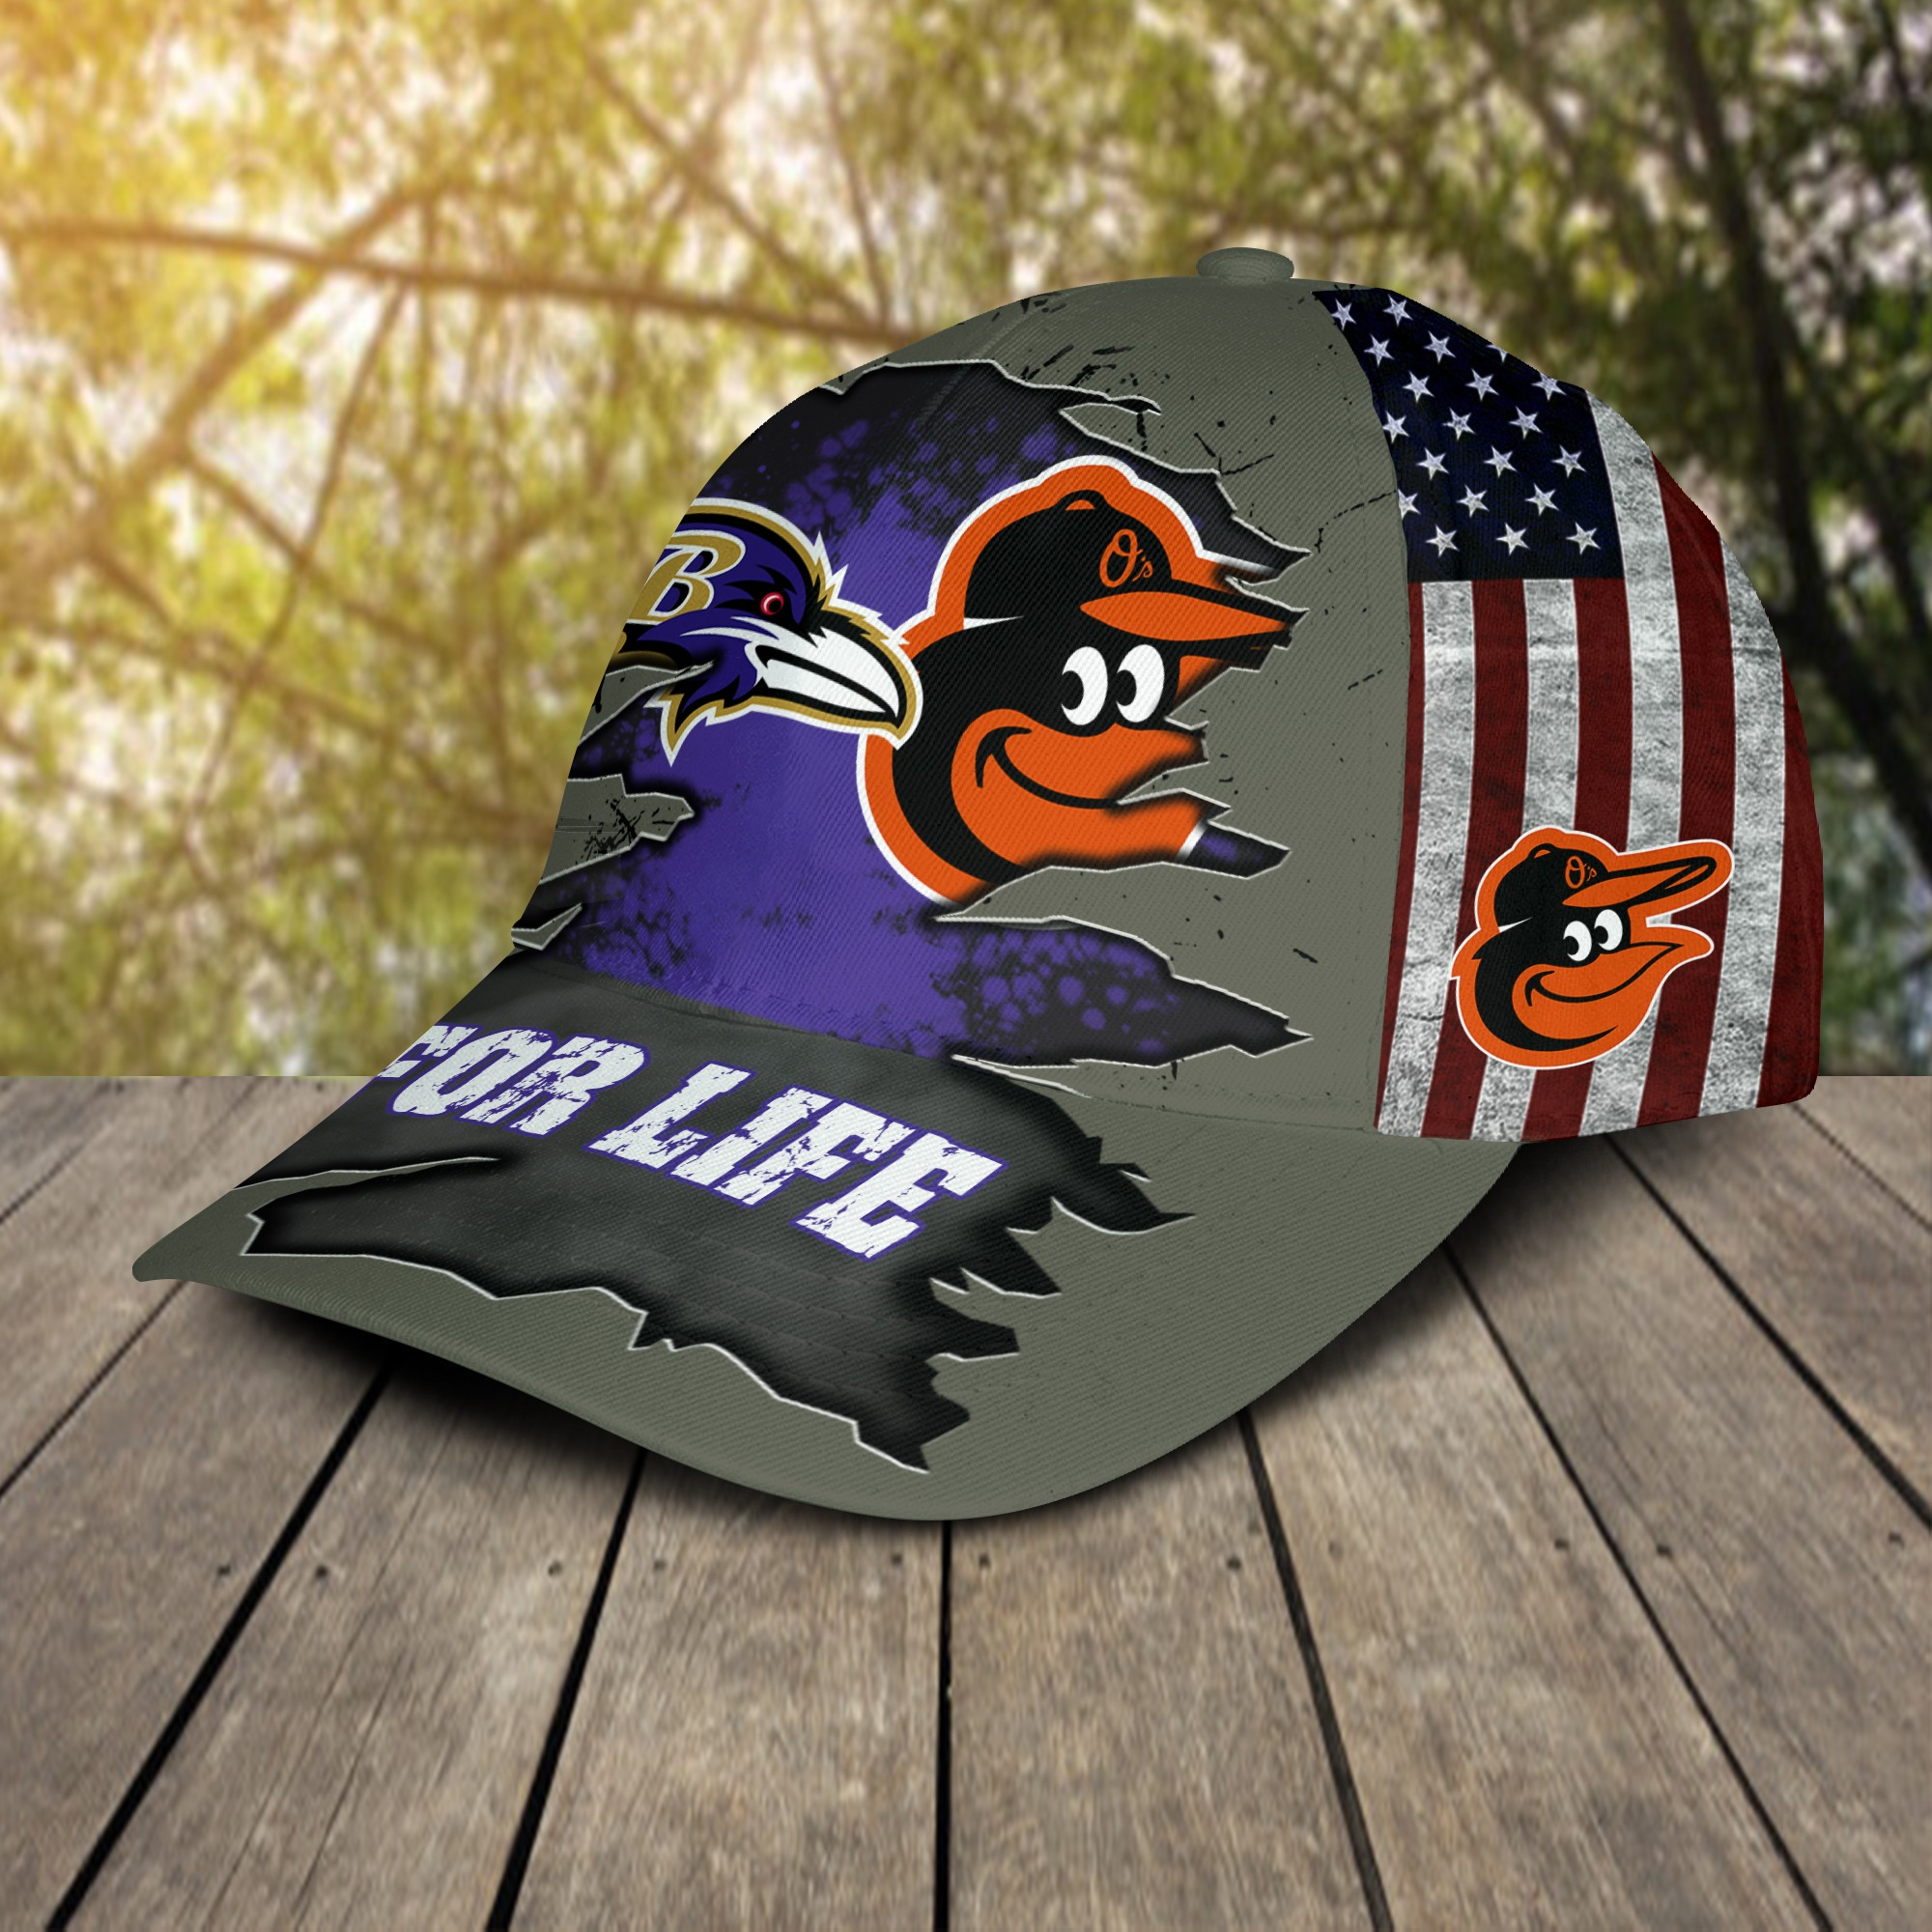 Baltimore ravens and baltimore orioles for life cap 2